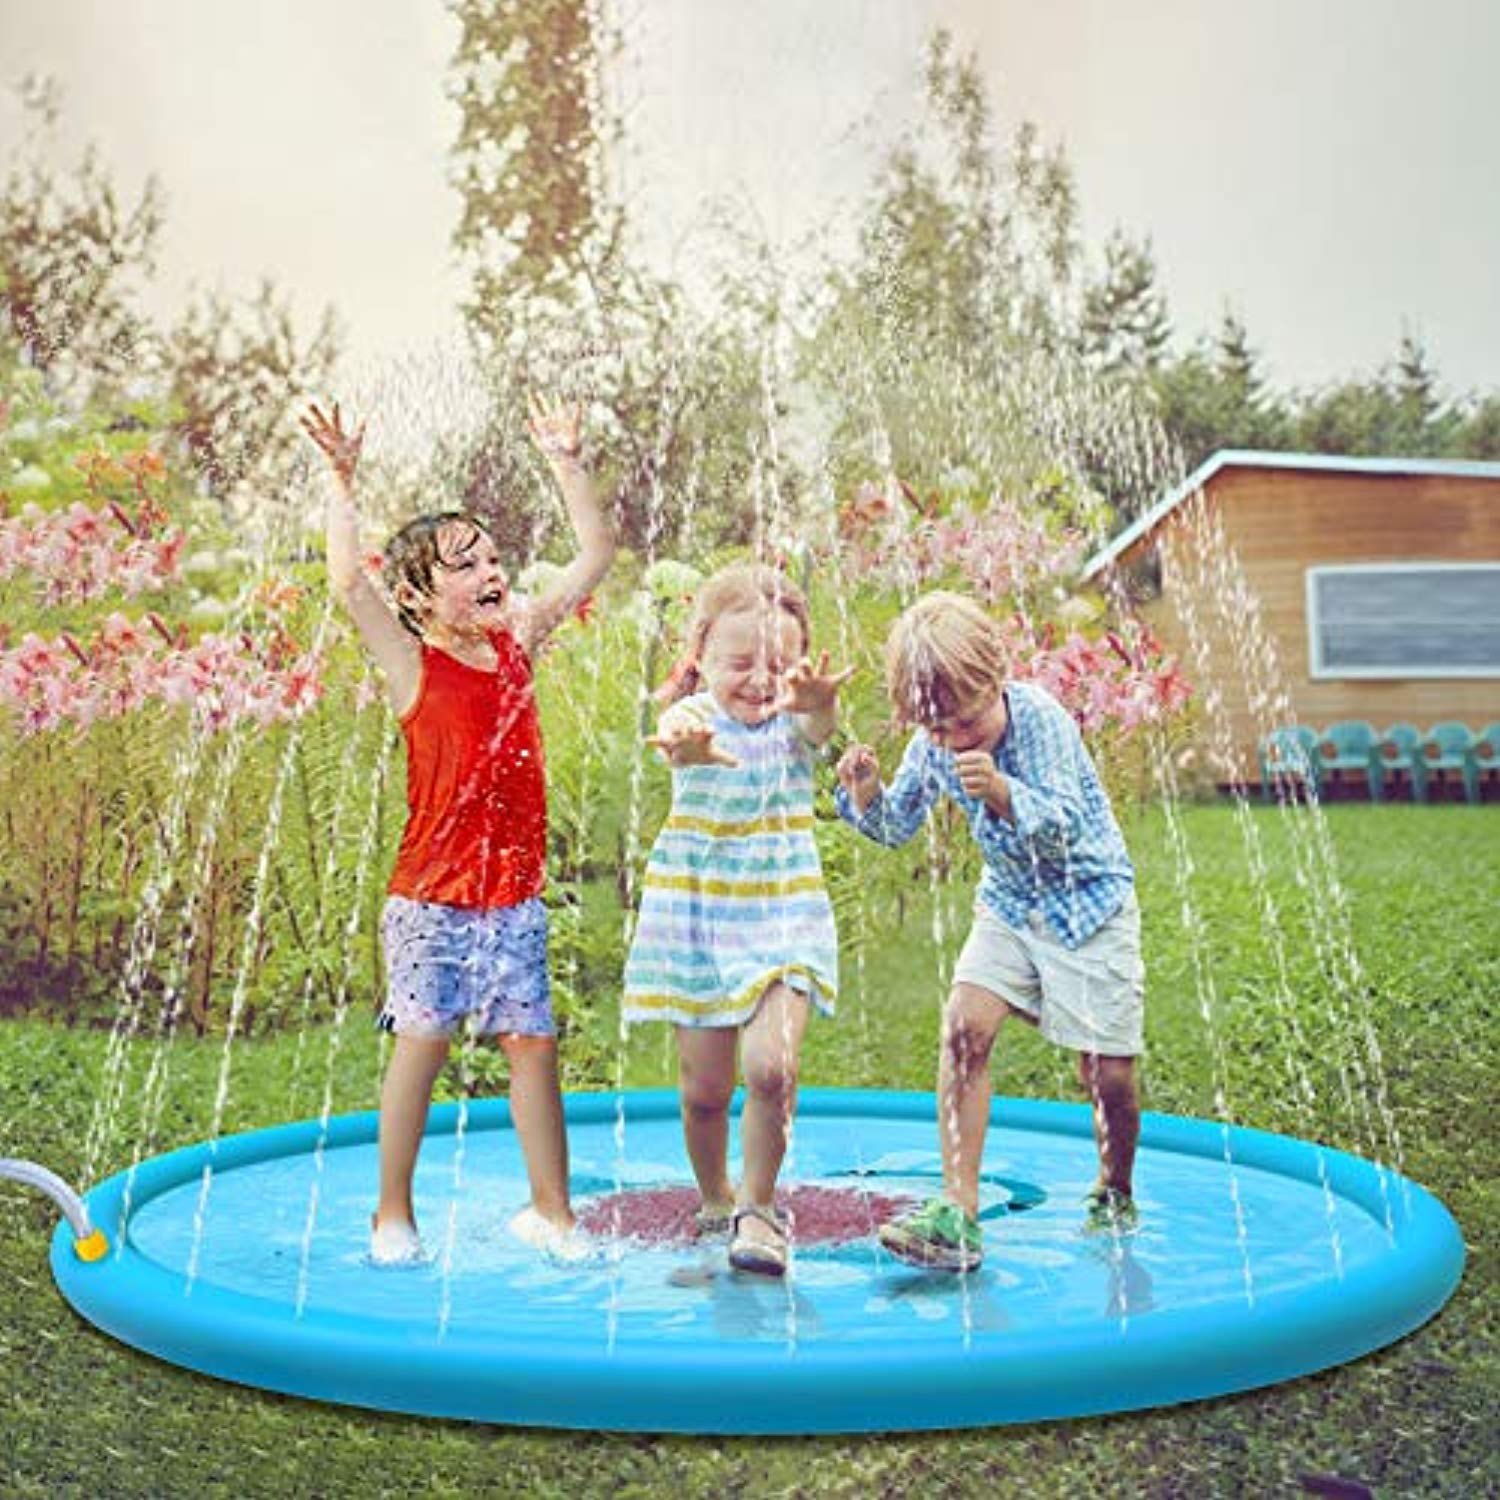 Sprinkler for Kids Outdoor Water Toys